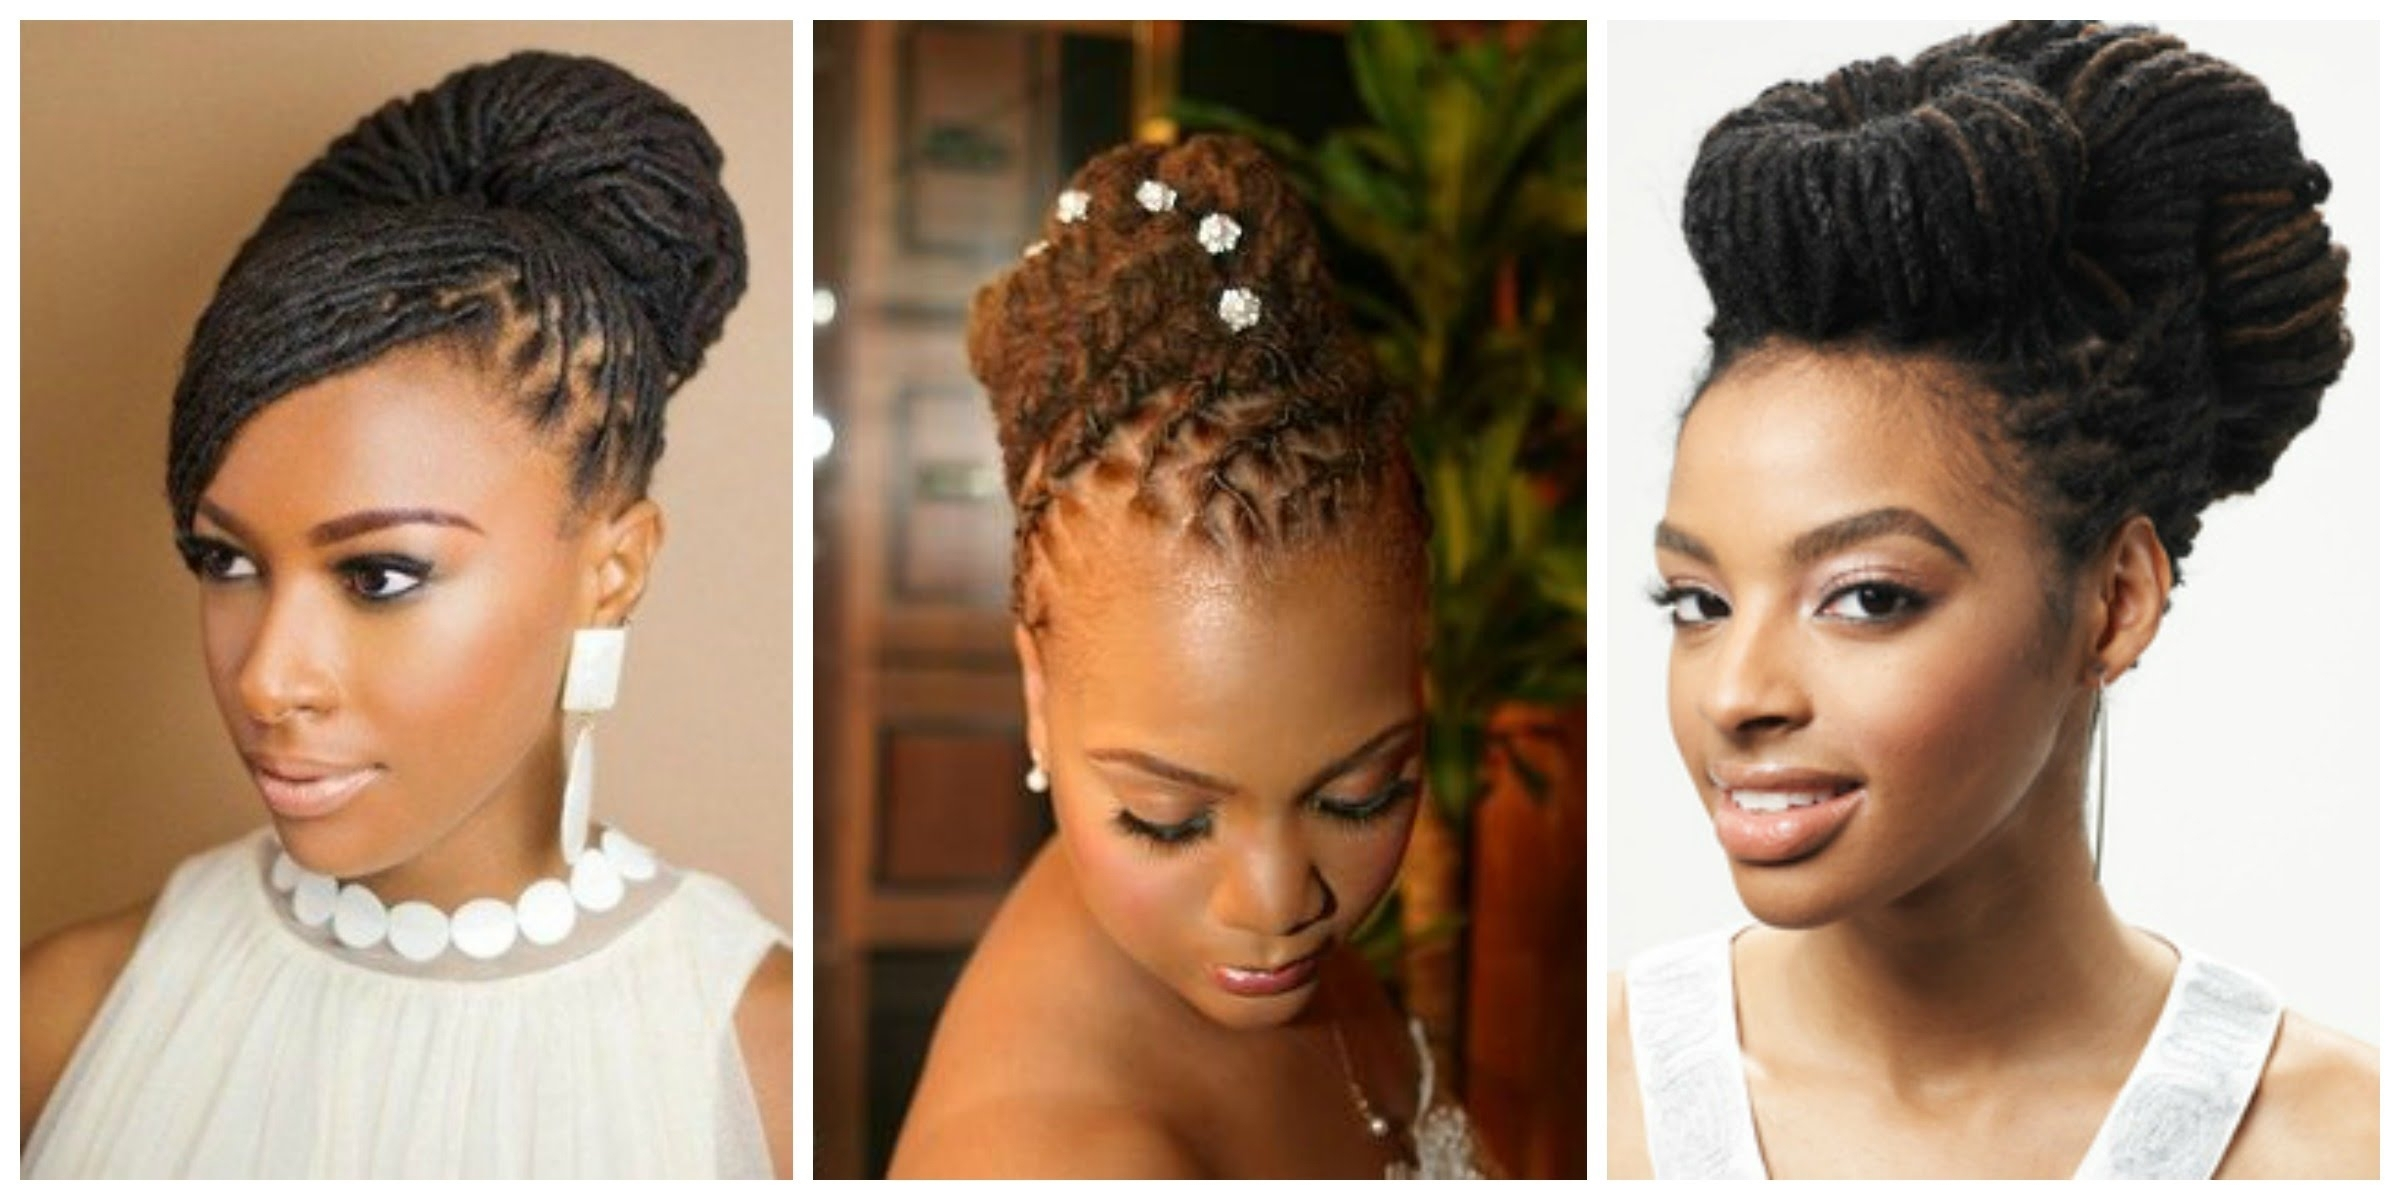 Dreadlocks Updo Hairstyles For Women Loc Updo Hairstyles | Dreadlock Intended For Updo Locs Hairstyles (View 4 of 15)